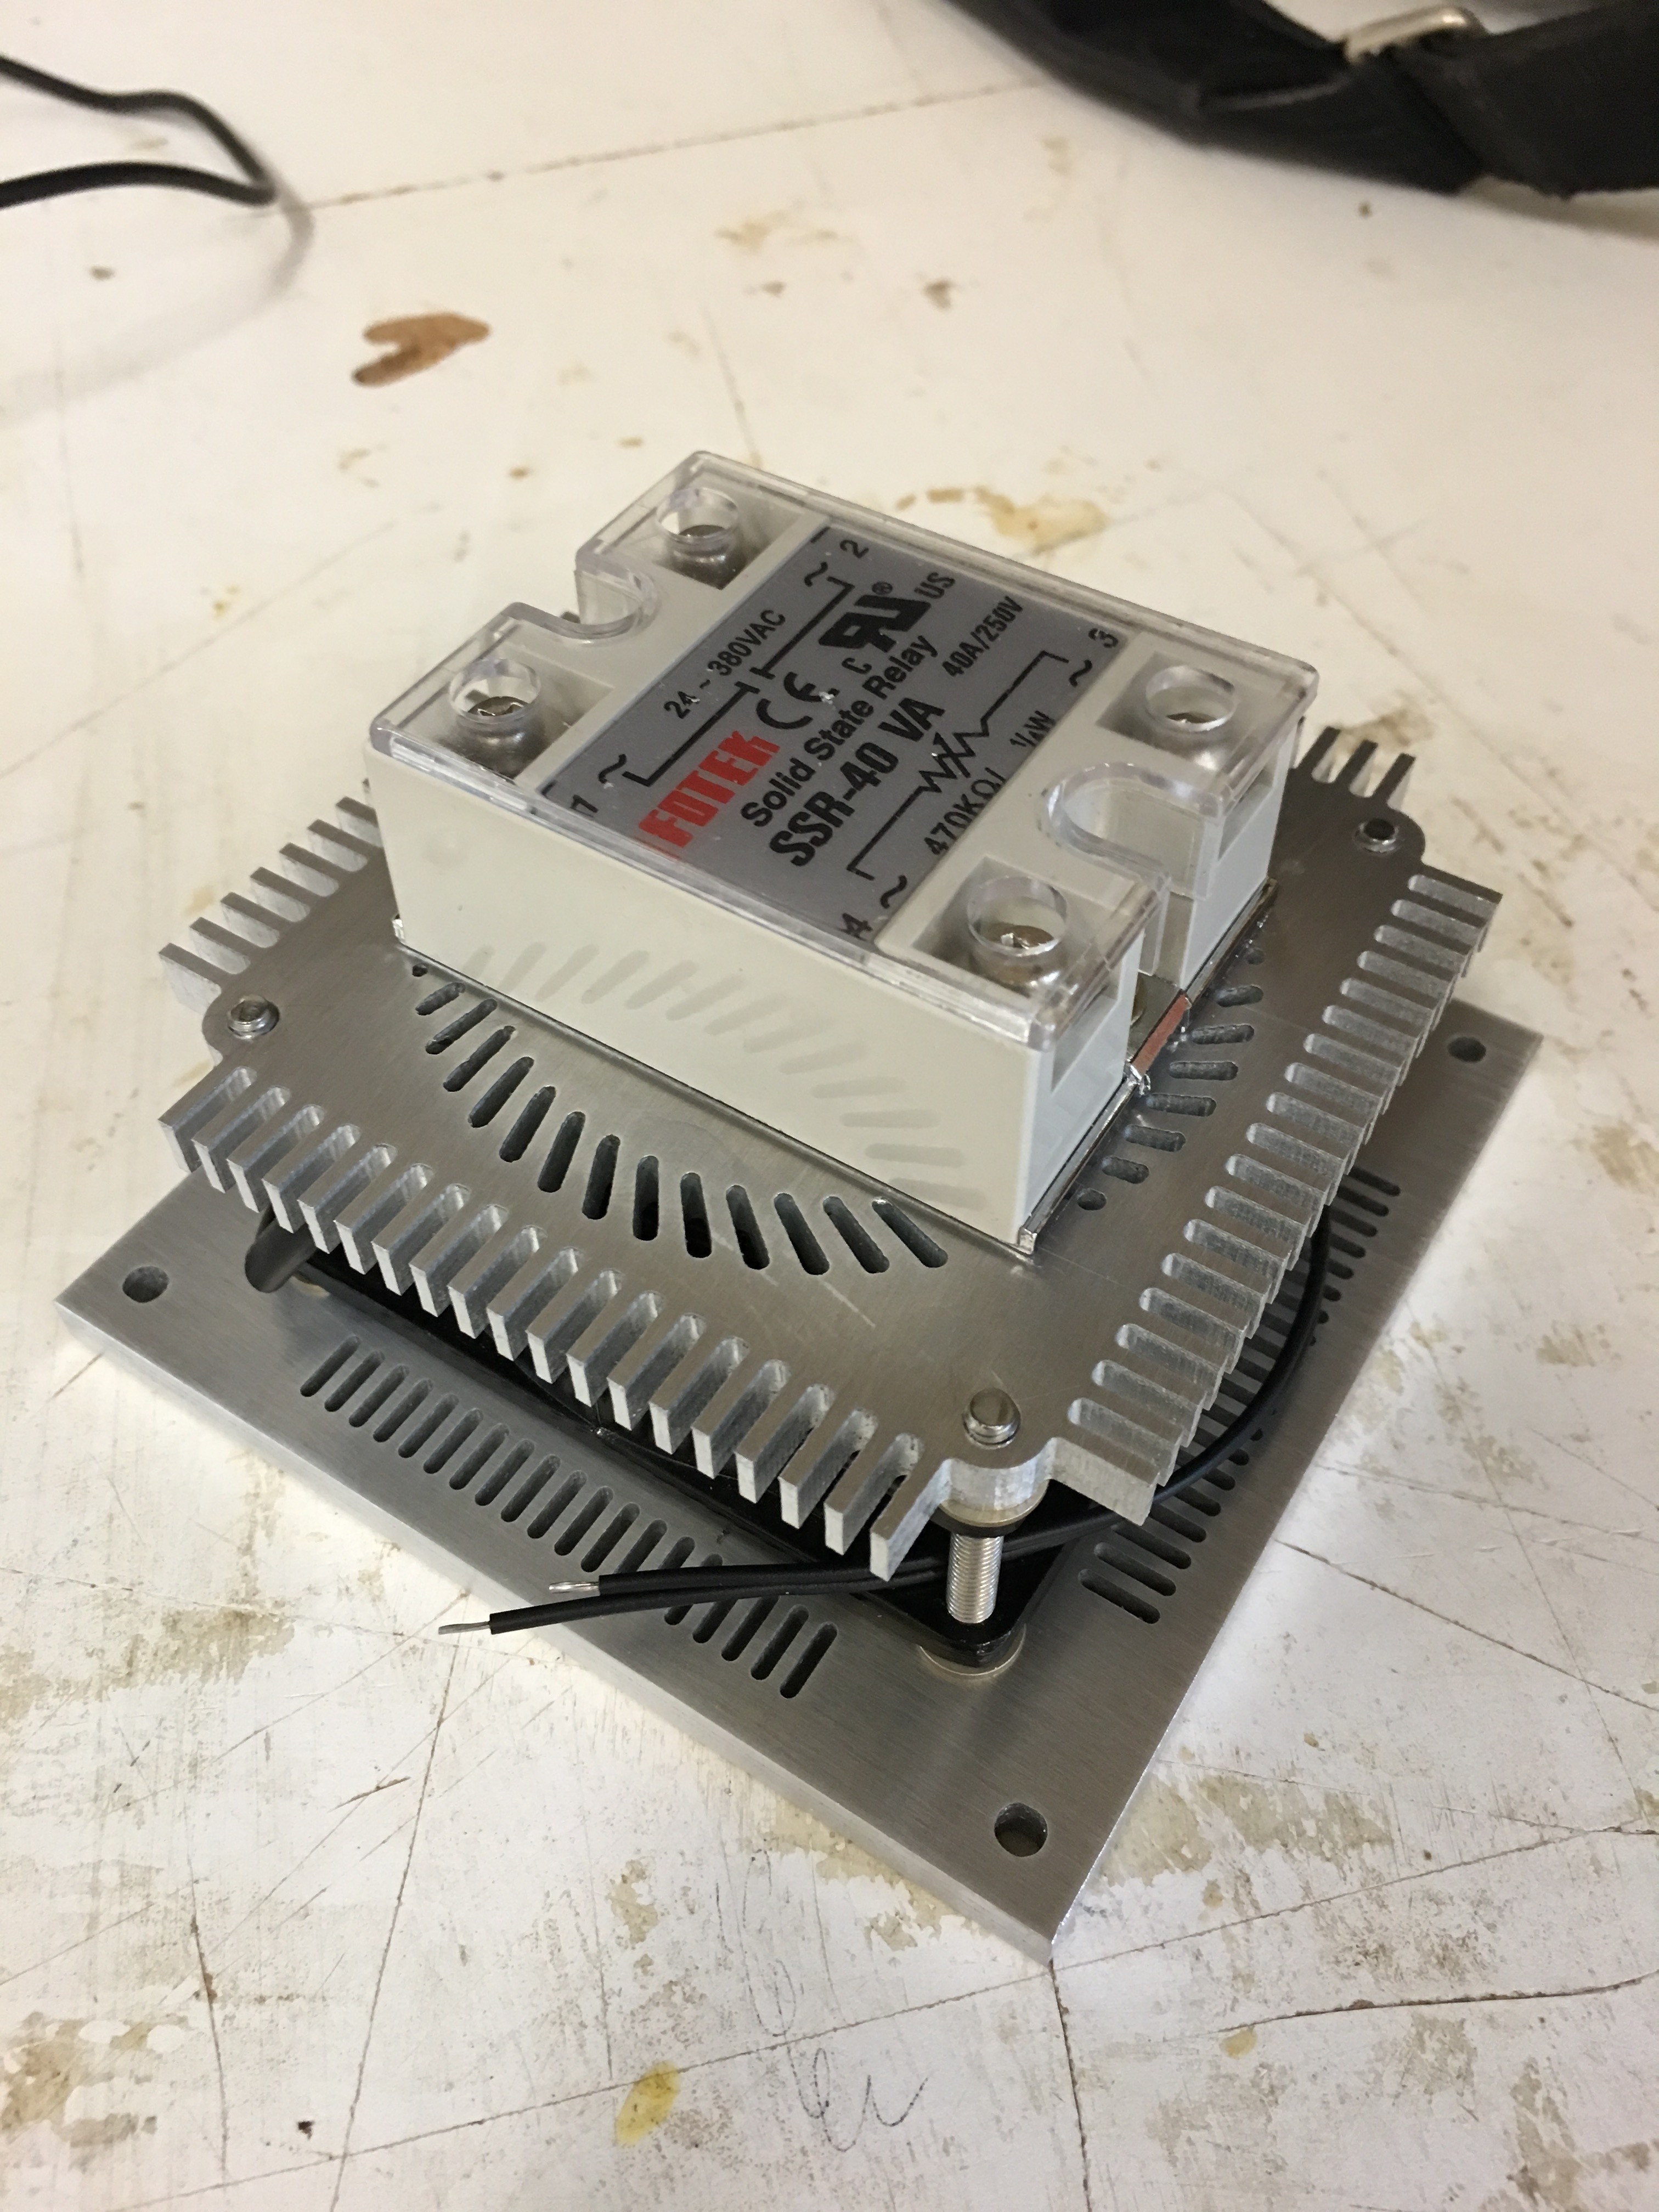 Phase Control Modulator Using Solid State Relay Projects Vhs Small Wiring Diagram Cd586f6032d5647dce45302da17b80d2ac26c6603024x4032